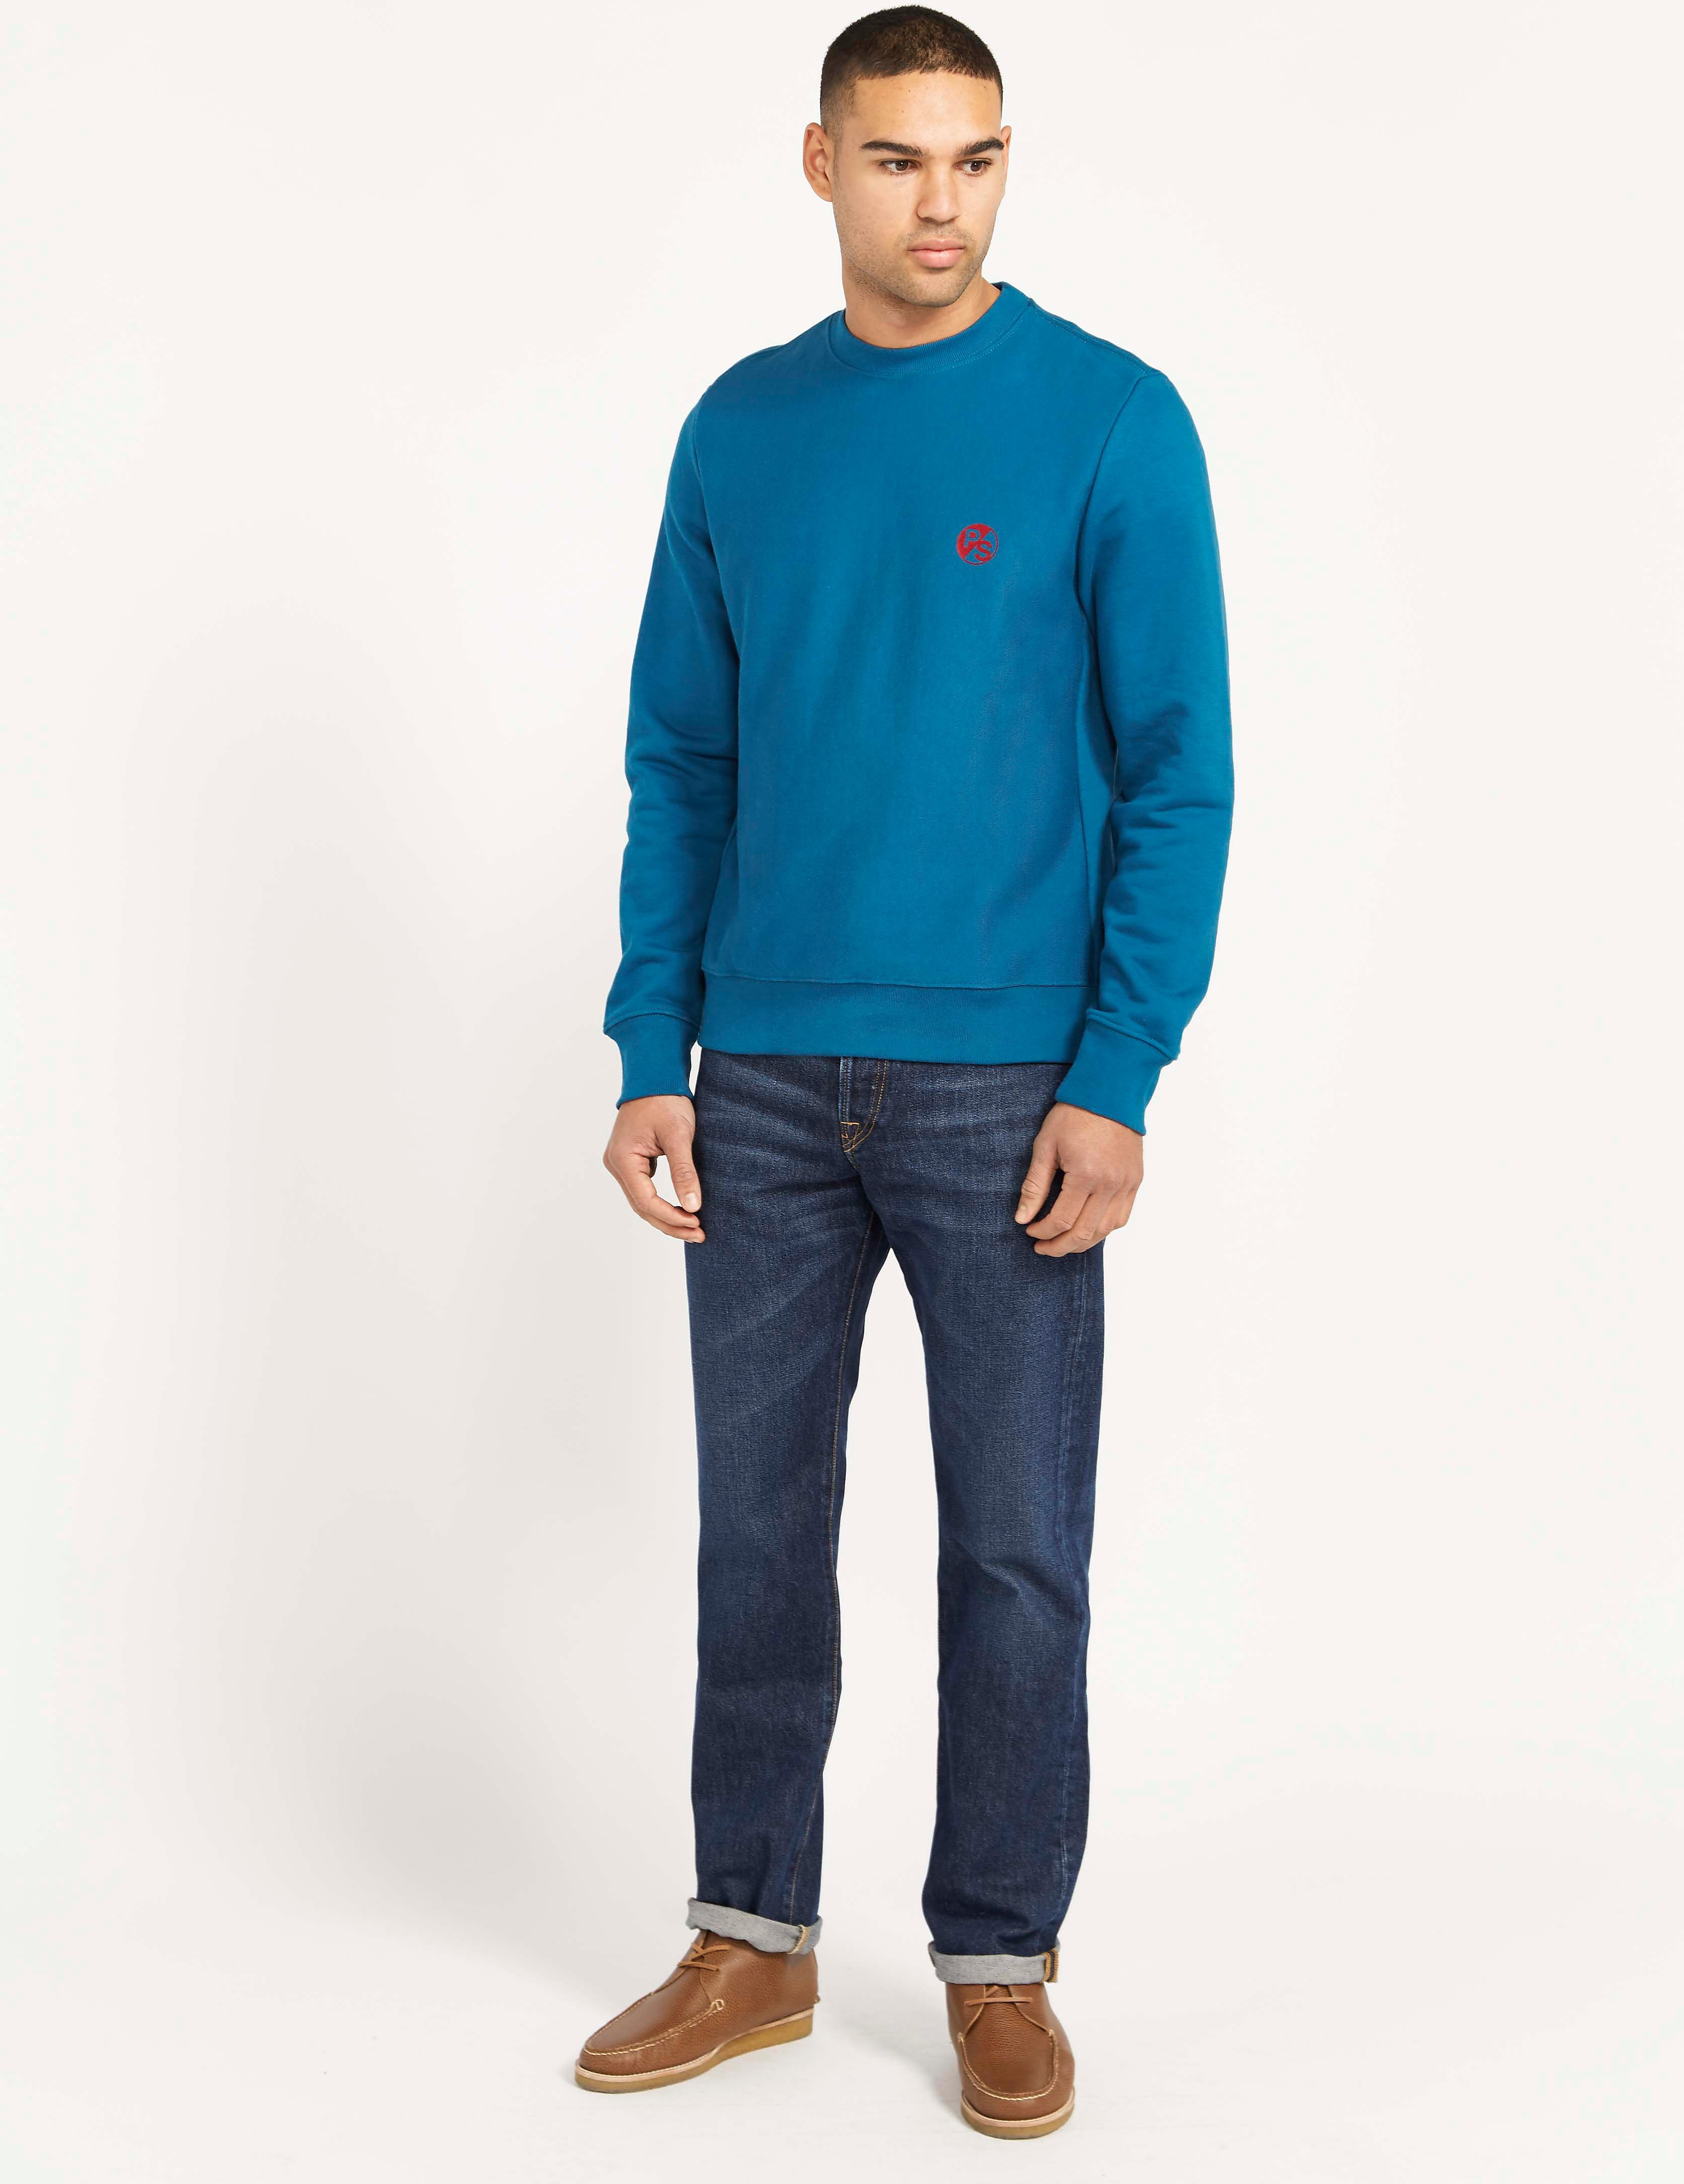 Paul Smith Logo Sweatshirt